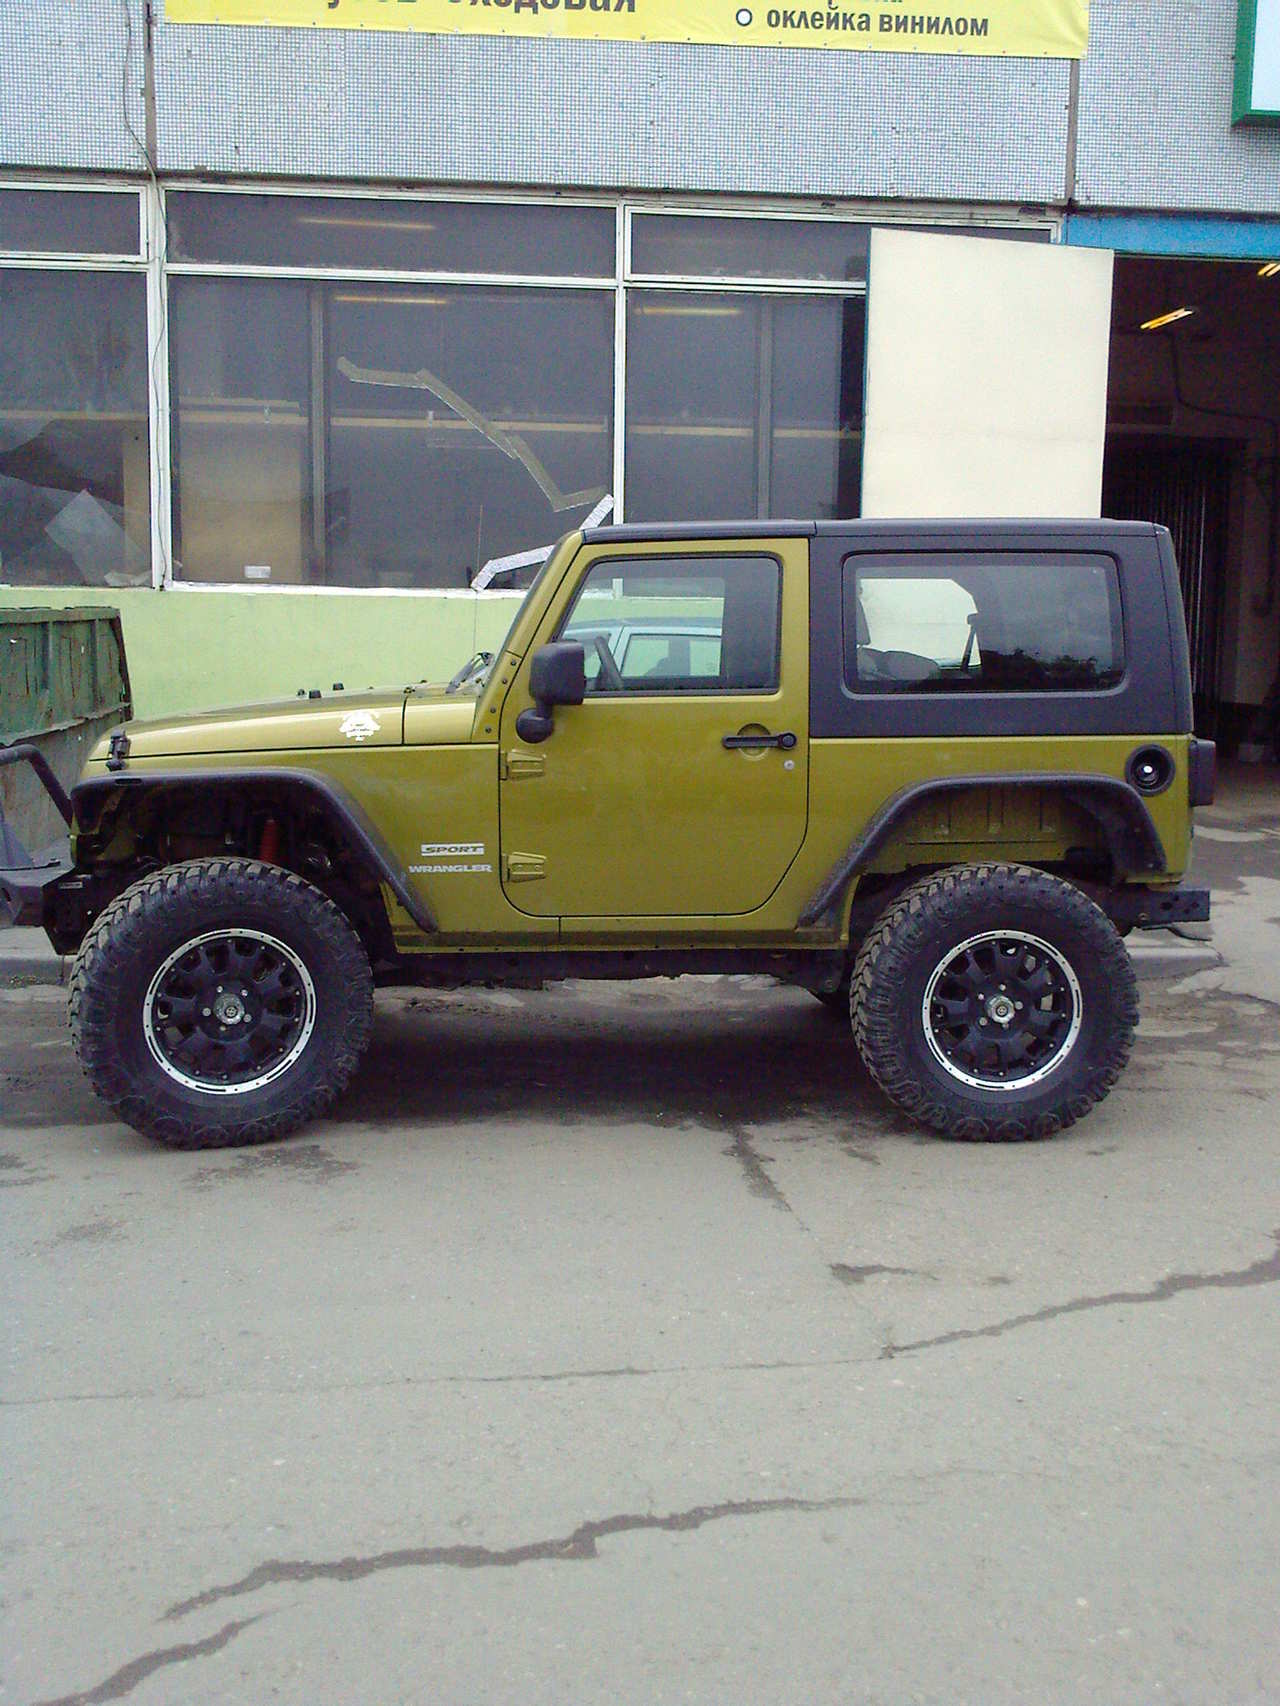 2008 jeep wrangler photos 3 8 gasoline automatic for sale. Black Bedroom Furniture Sets. Home Design Ideas